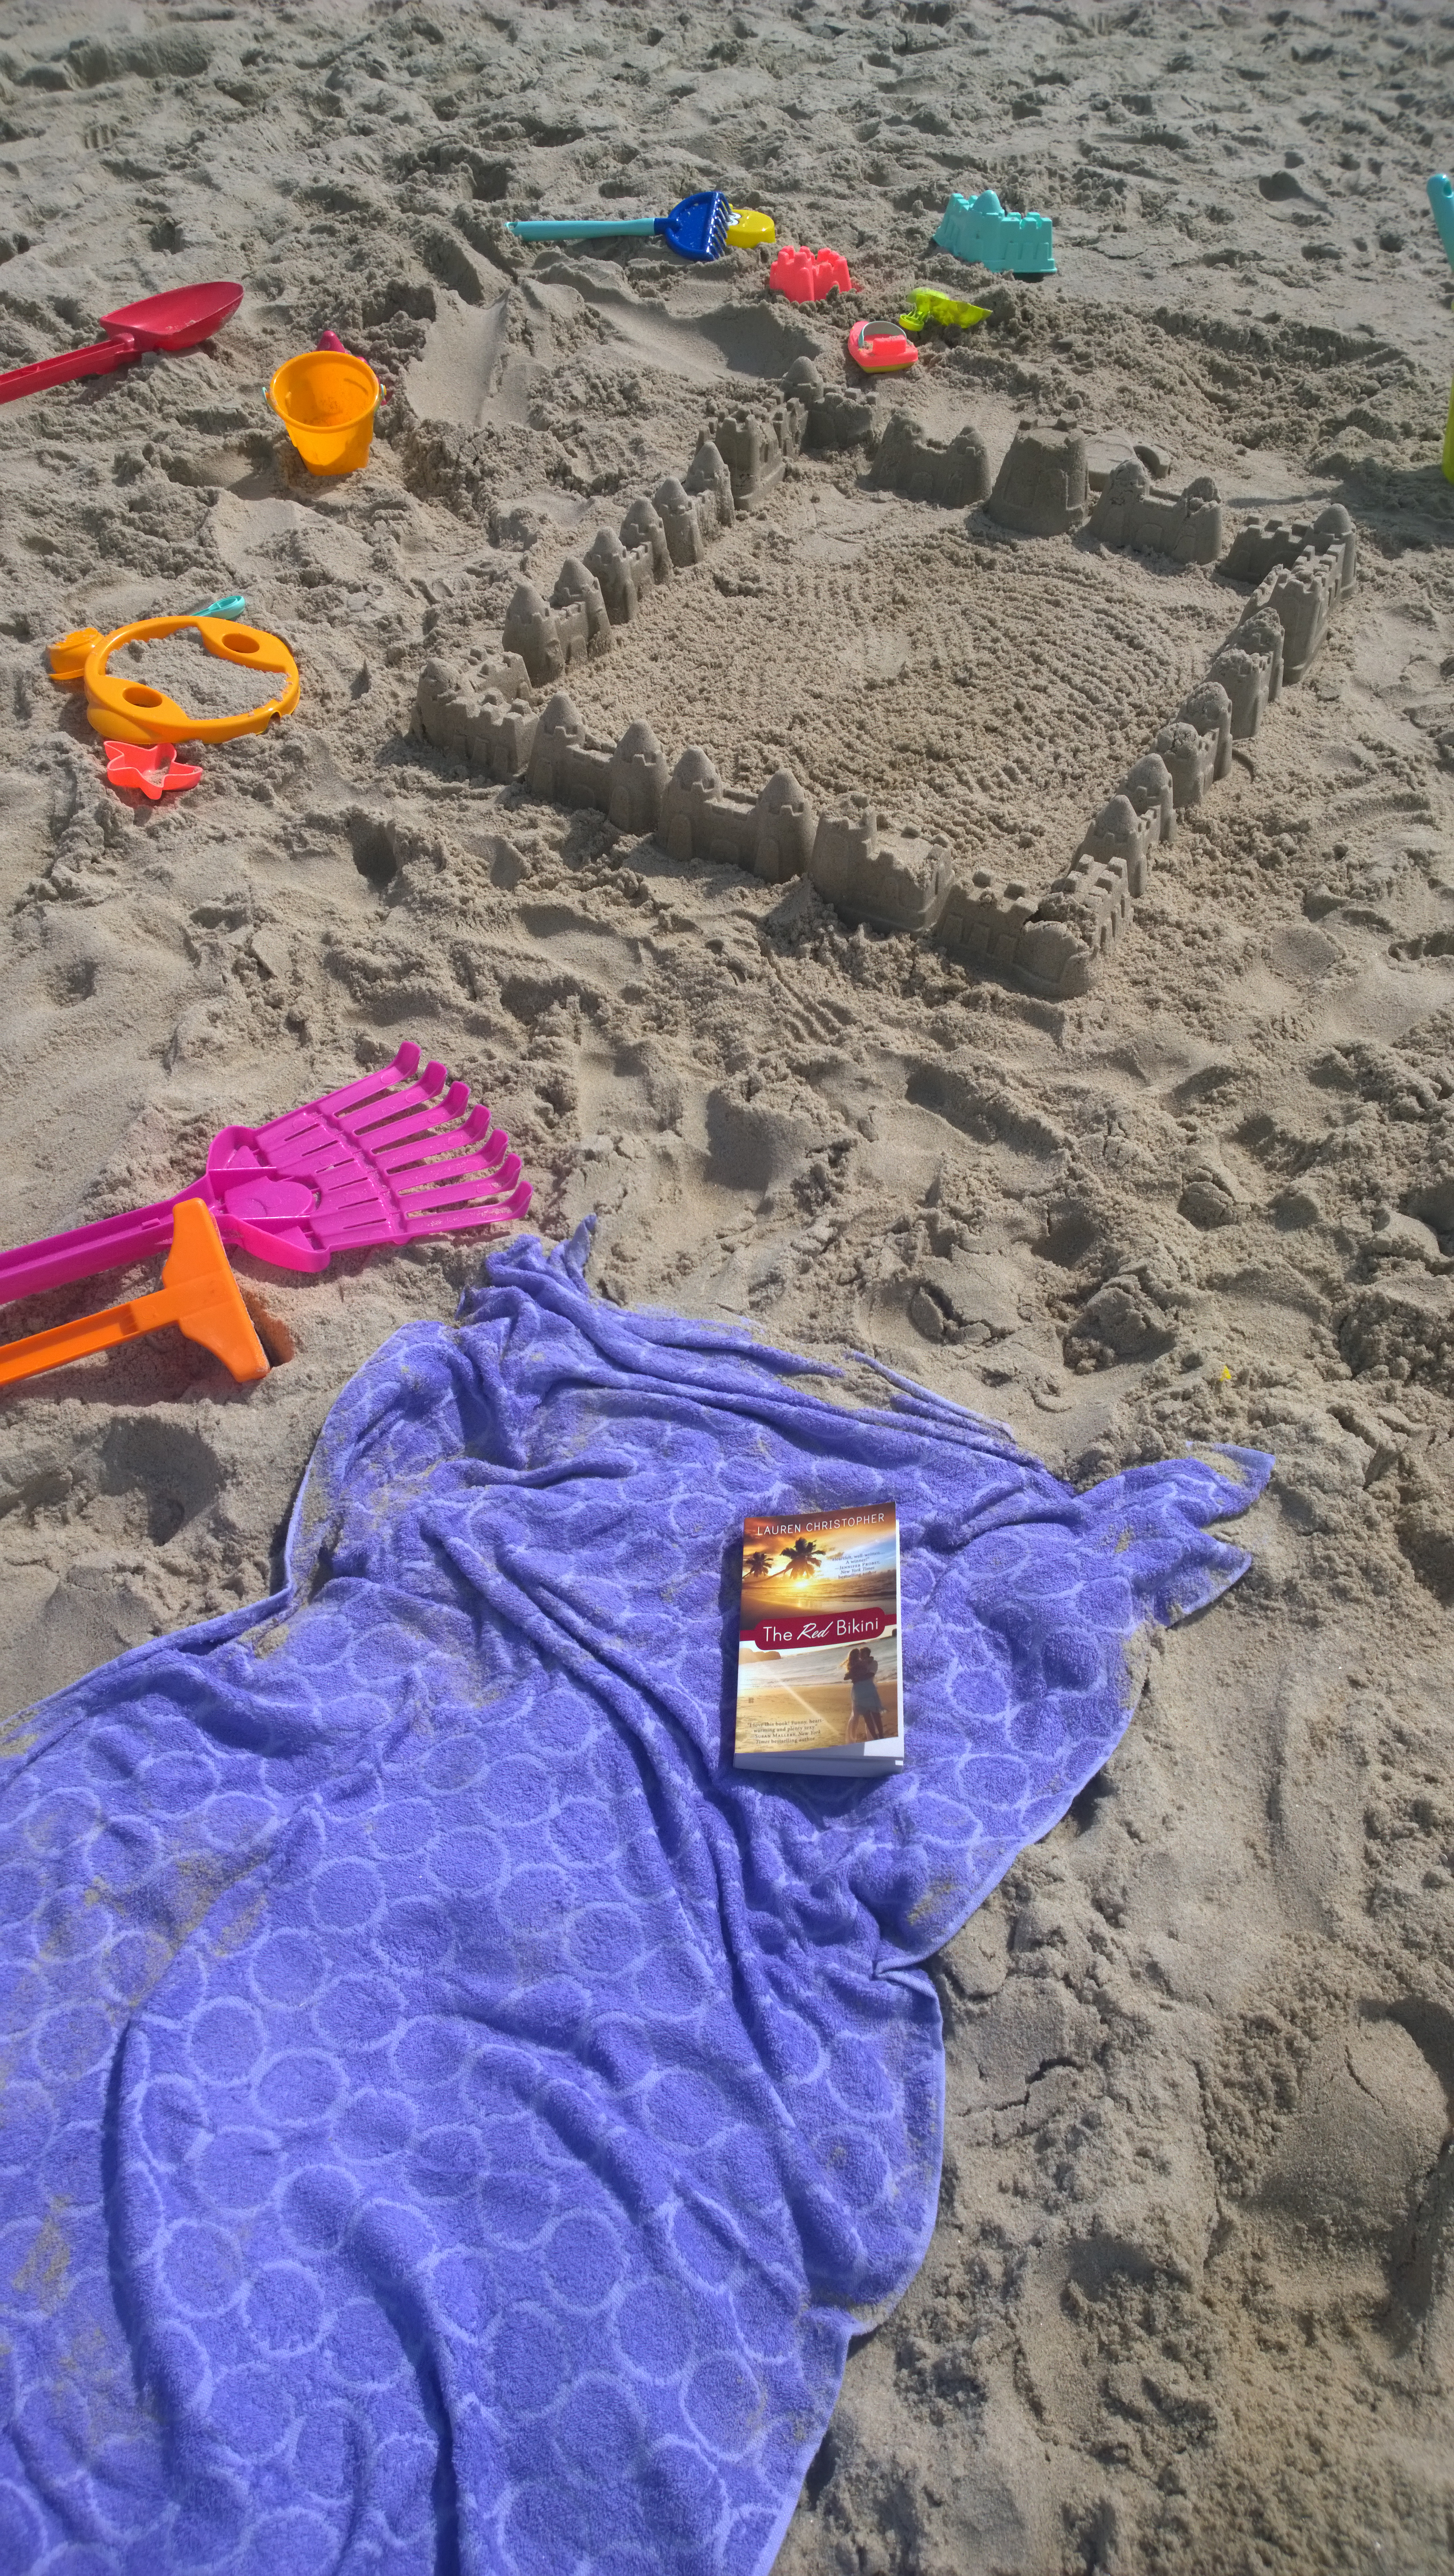 Debby B. With Her Kids At The Beach: She Reads While They Play!